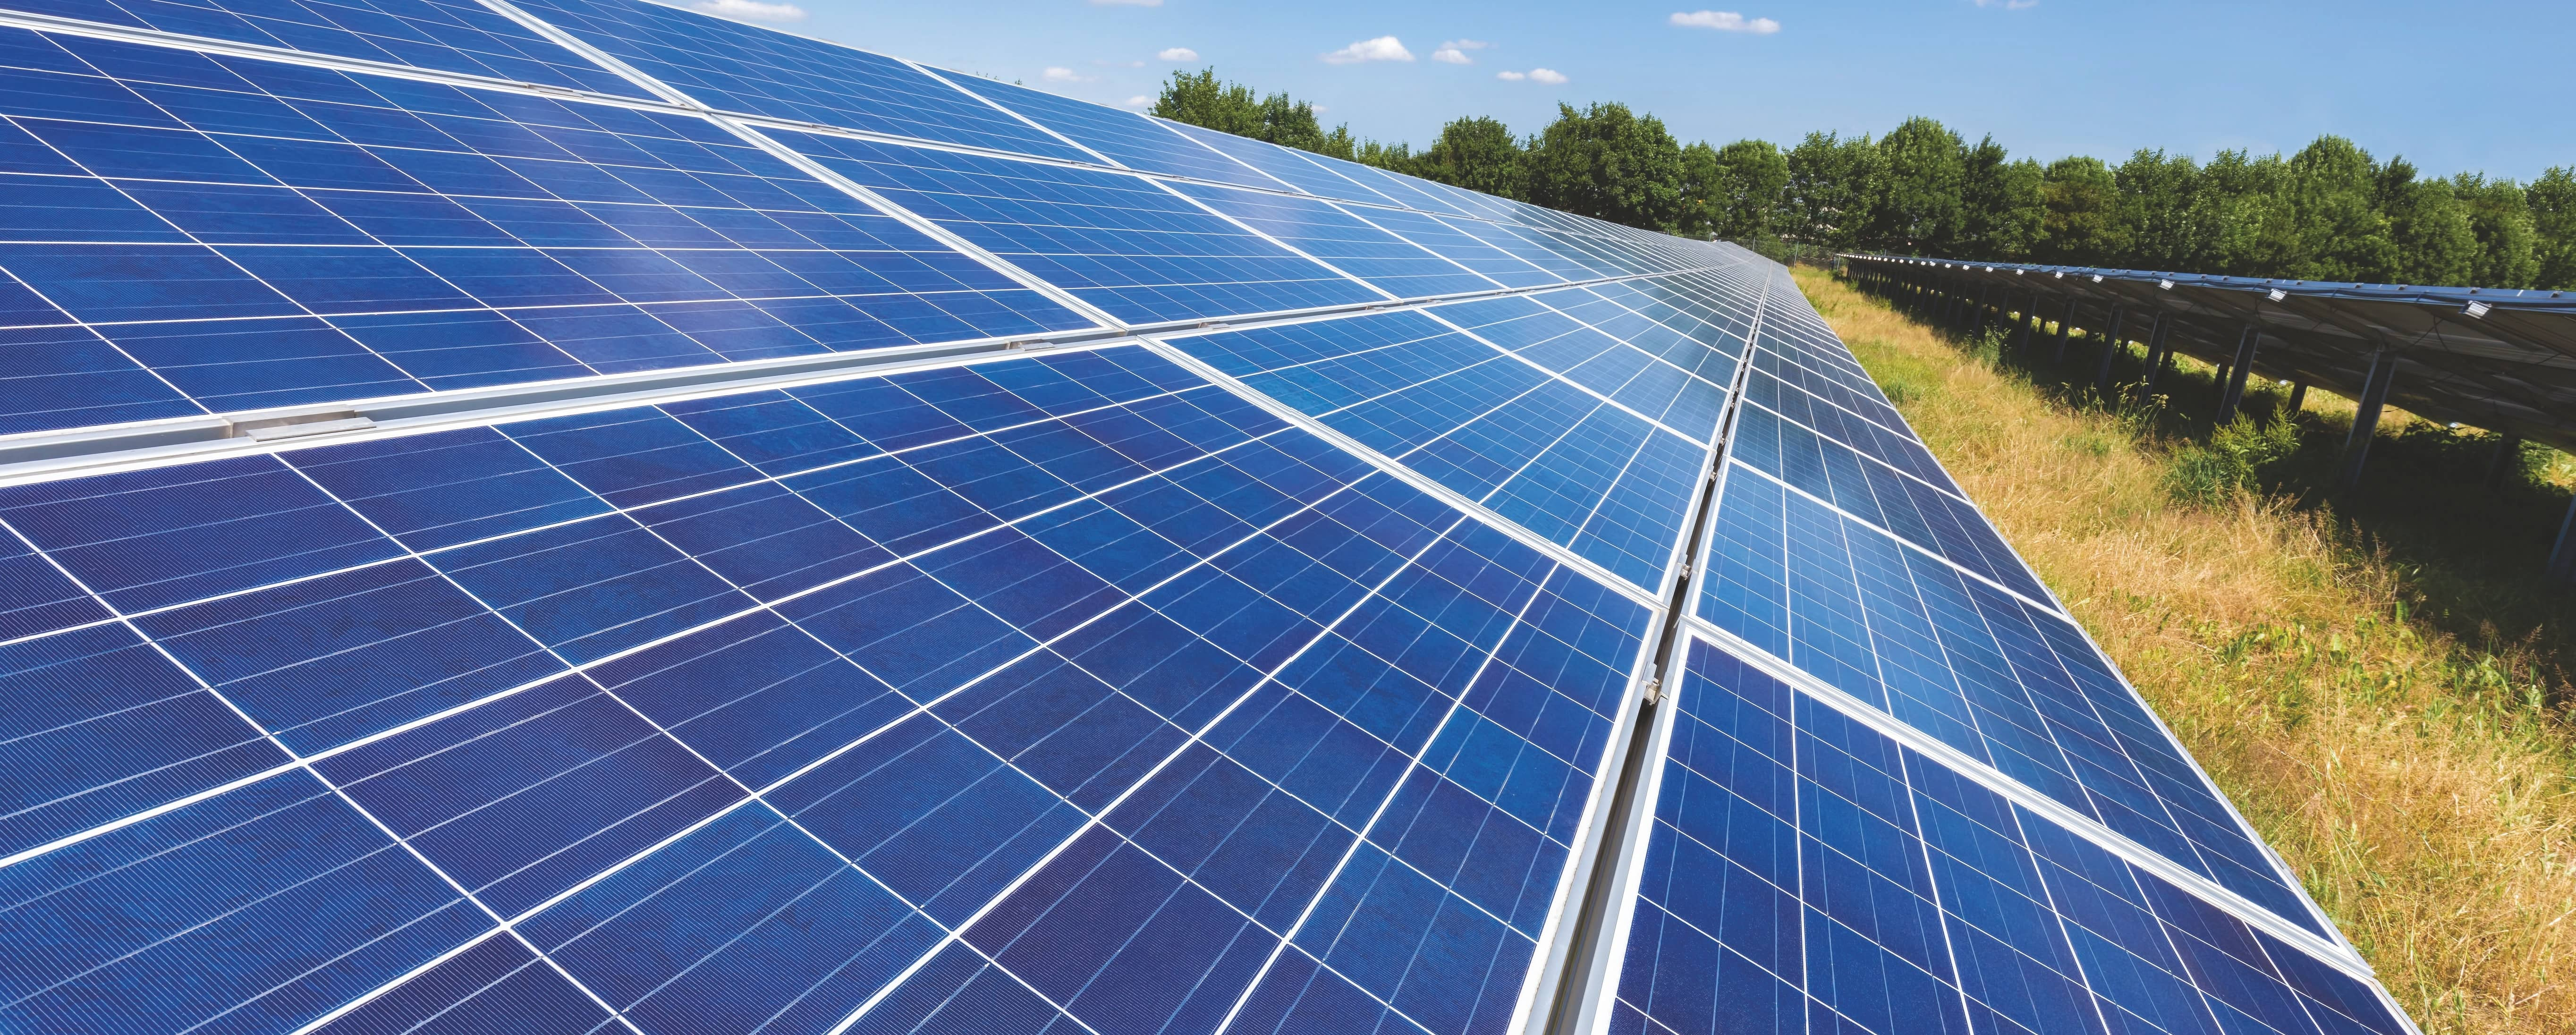 Dust Free Solar Panel For Efficient Electricity Production